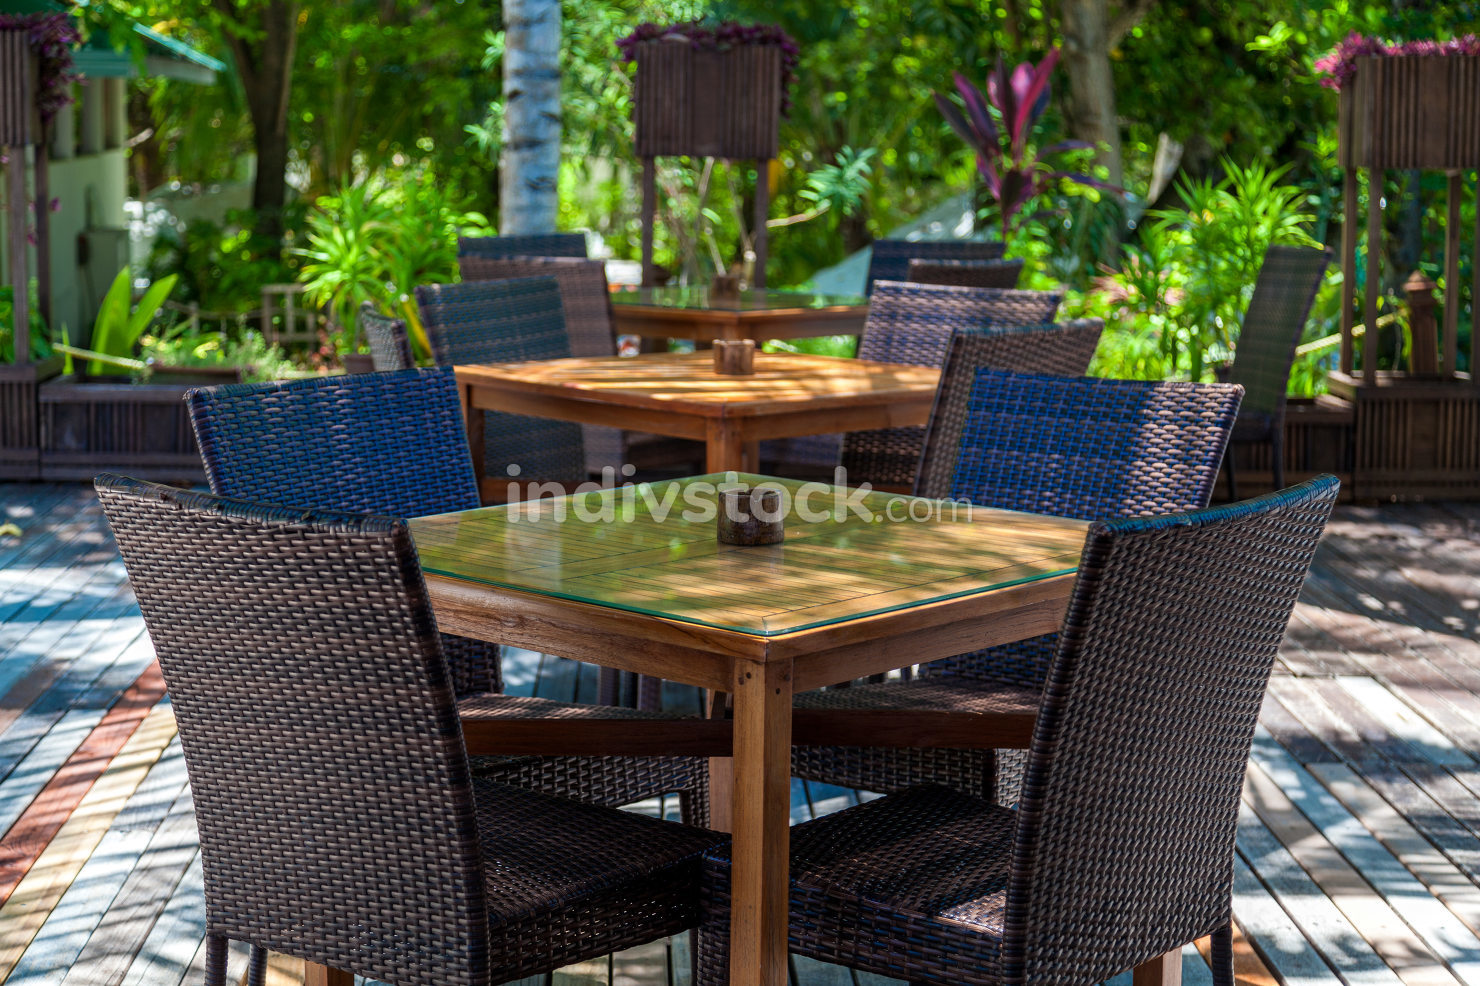 Furniture with chairs and tables in a cafe